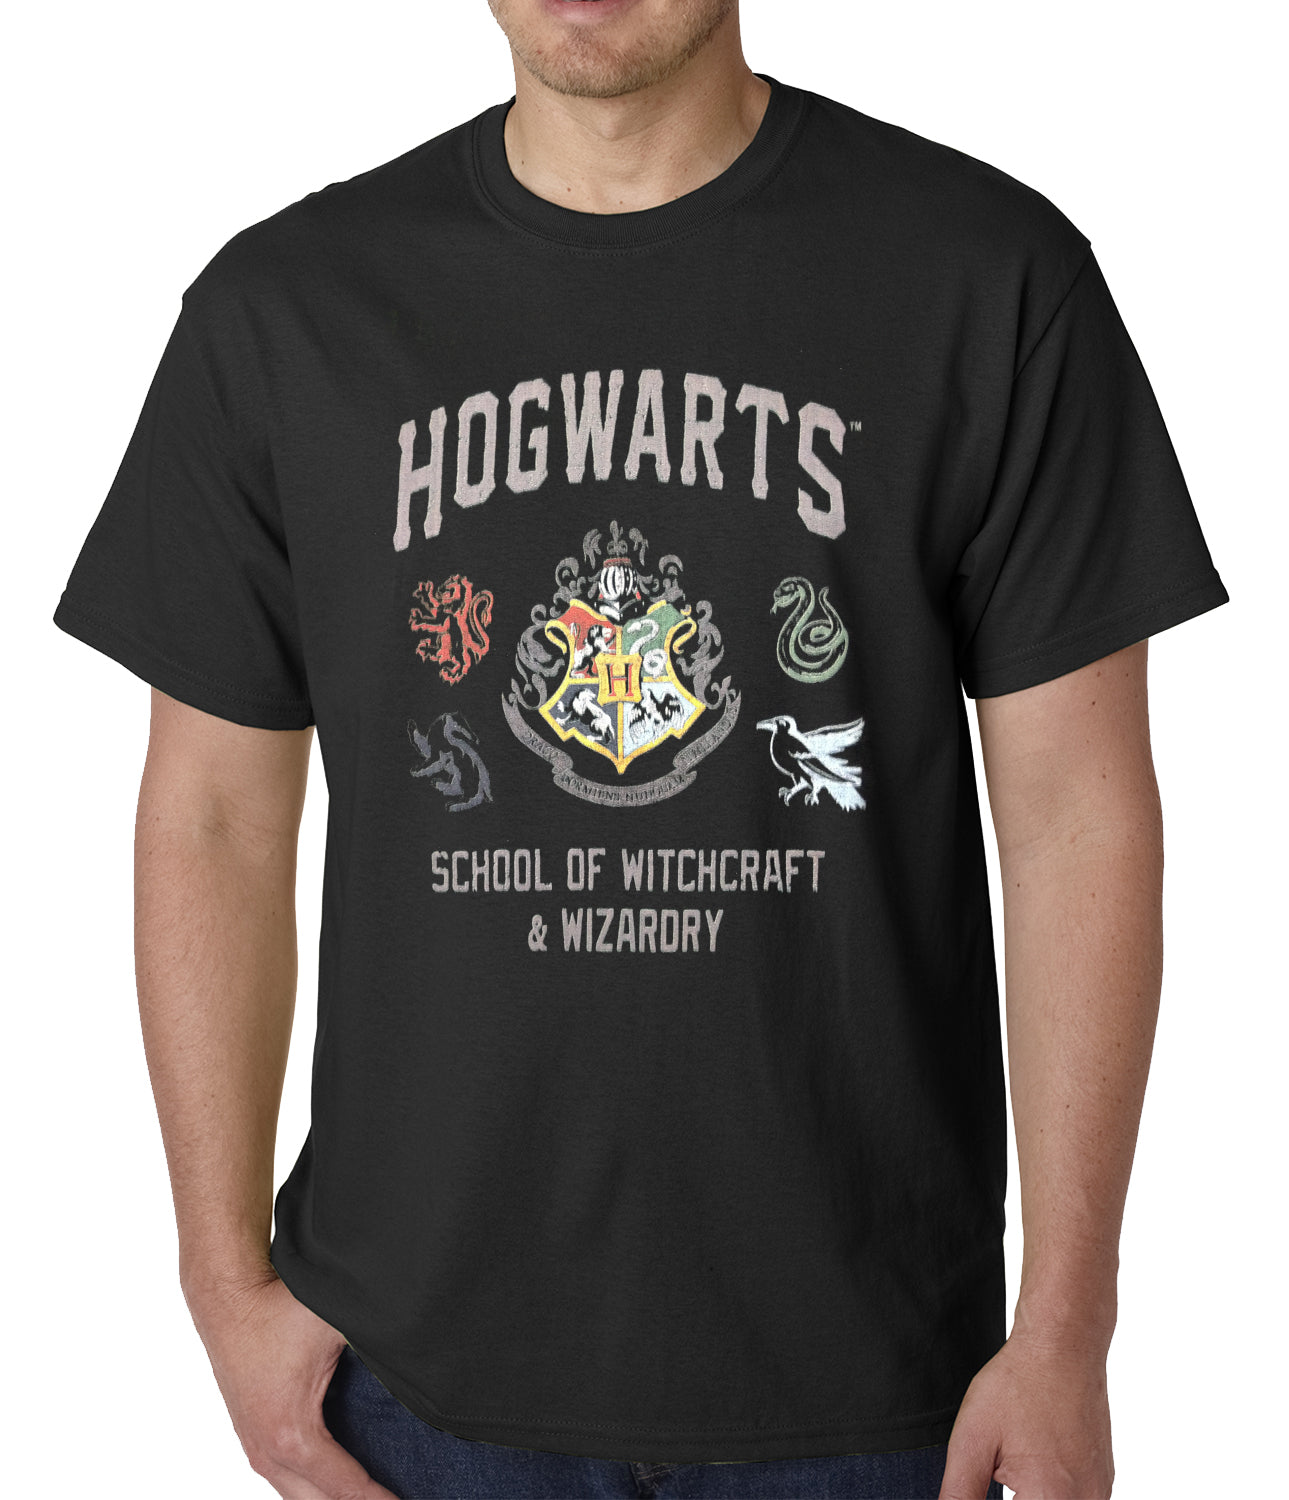 Official Hogwarts School of Witchcraft & Wizardry Mens T-shirt